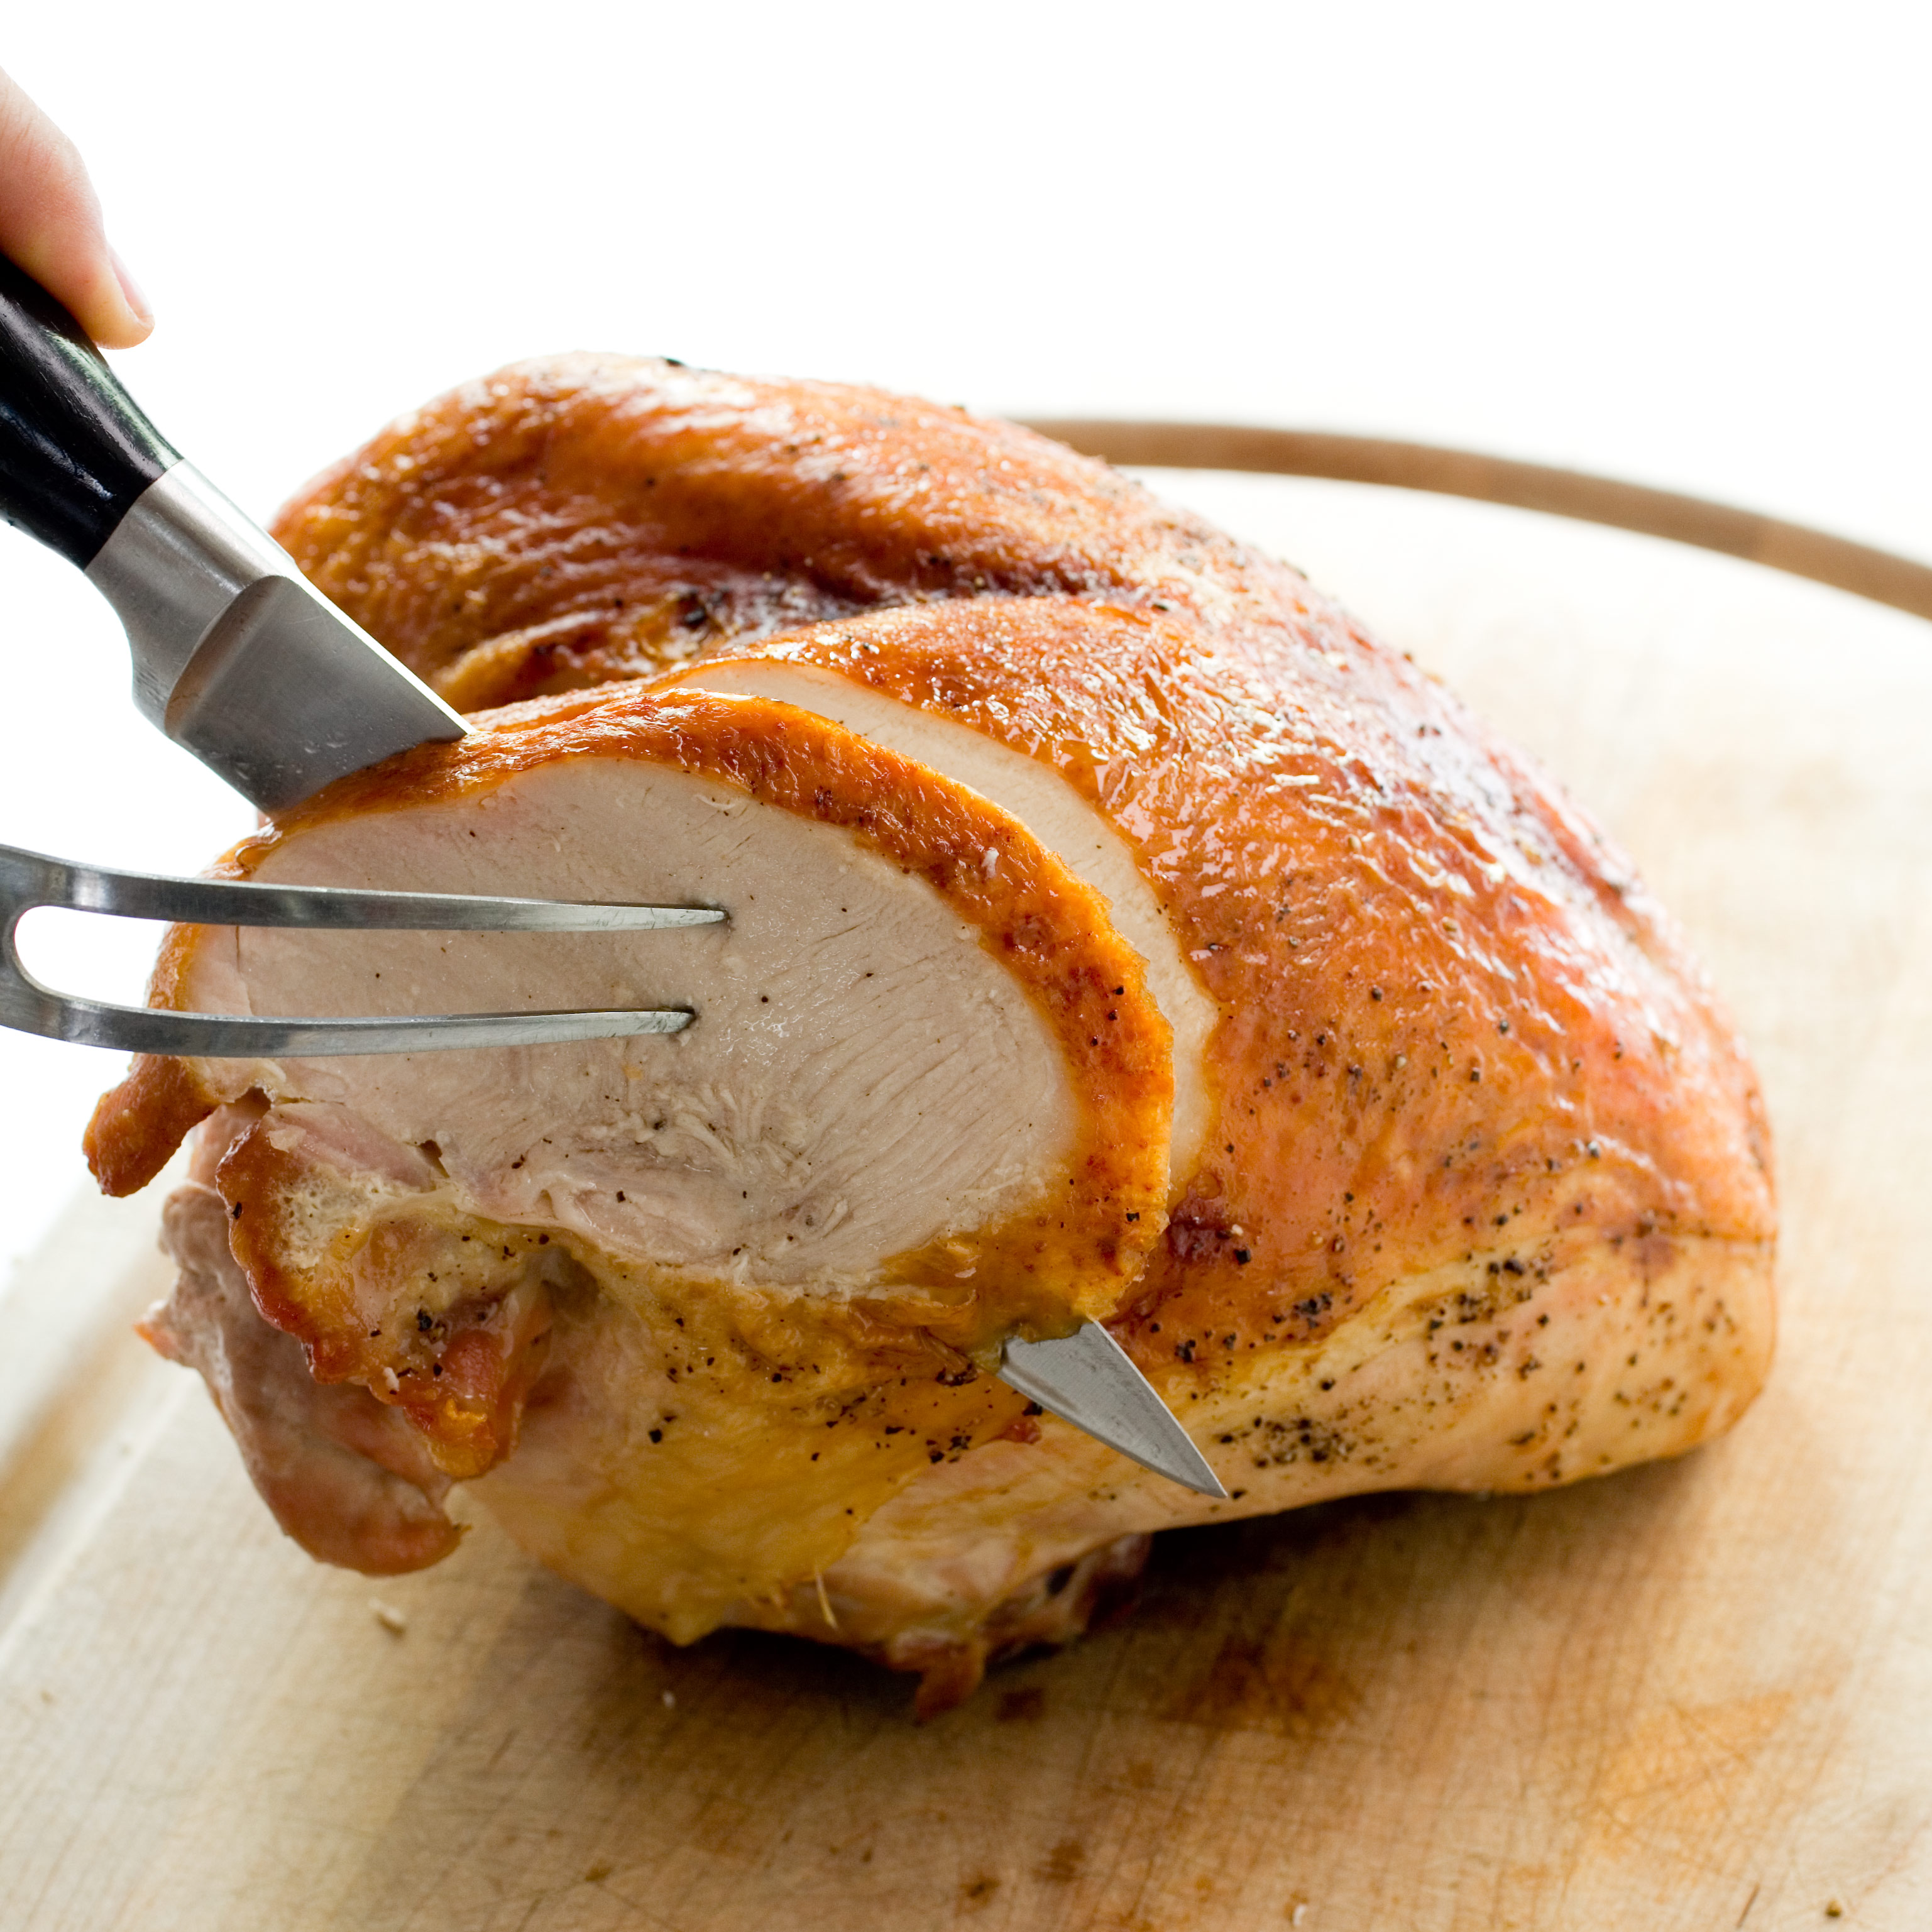 turkeybreast_article.jpg